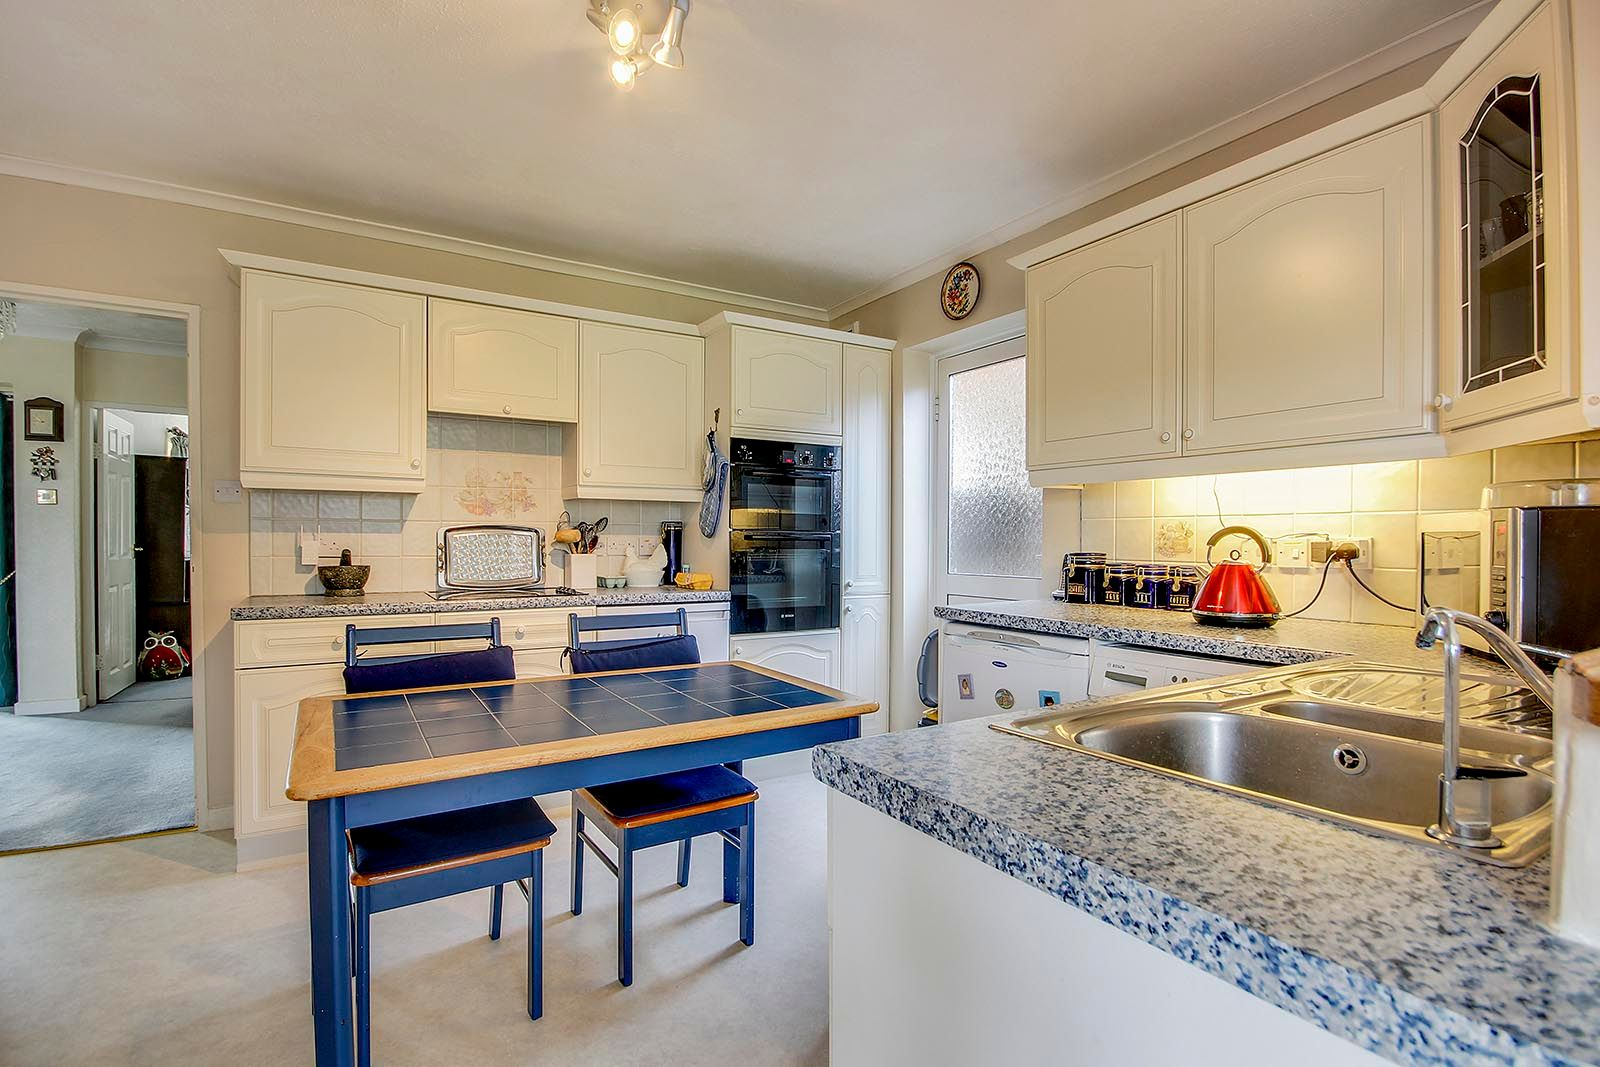 2 bed bungalow for sale in Banstead Close COMP AUG 2019 6